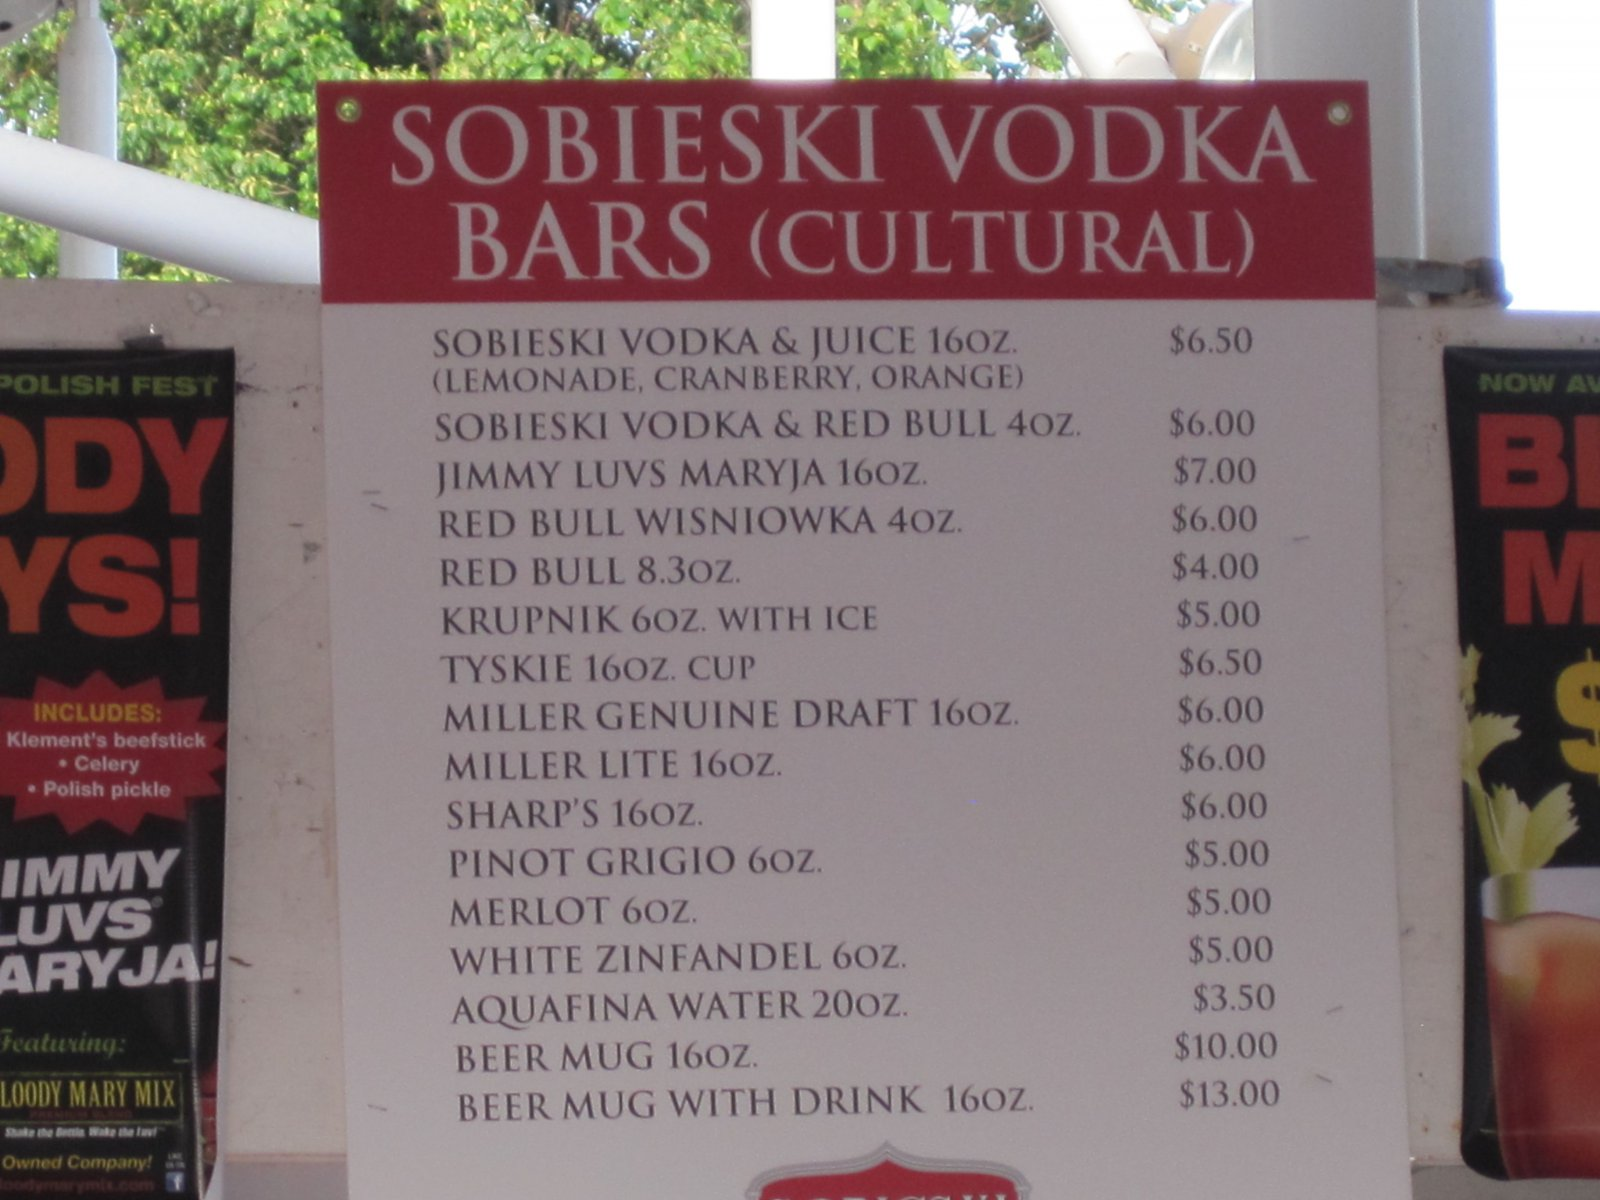 Vodka anyone?